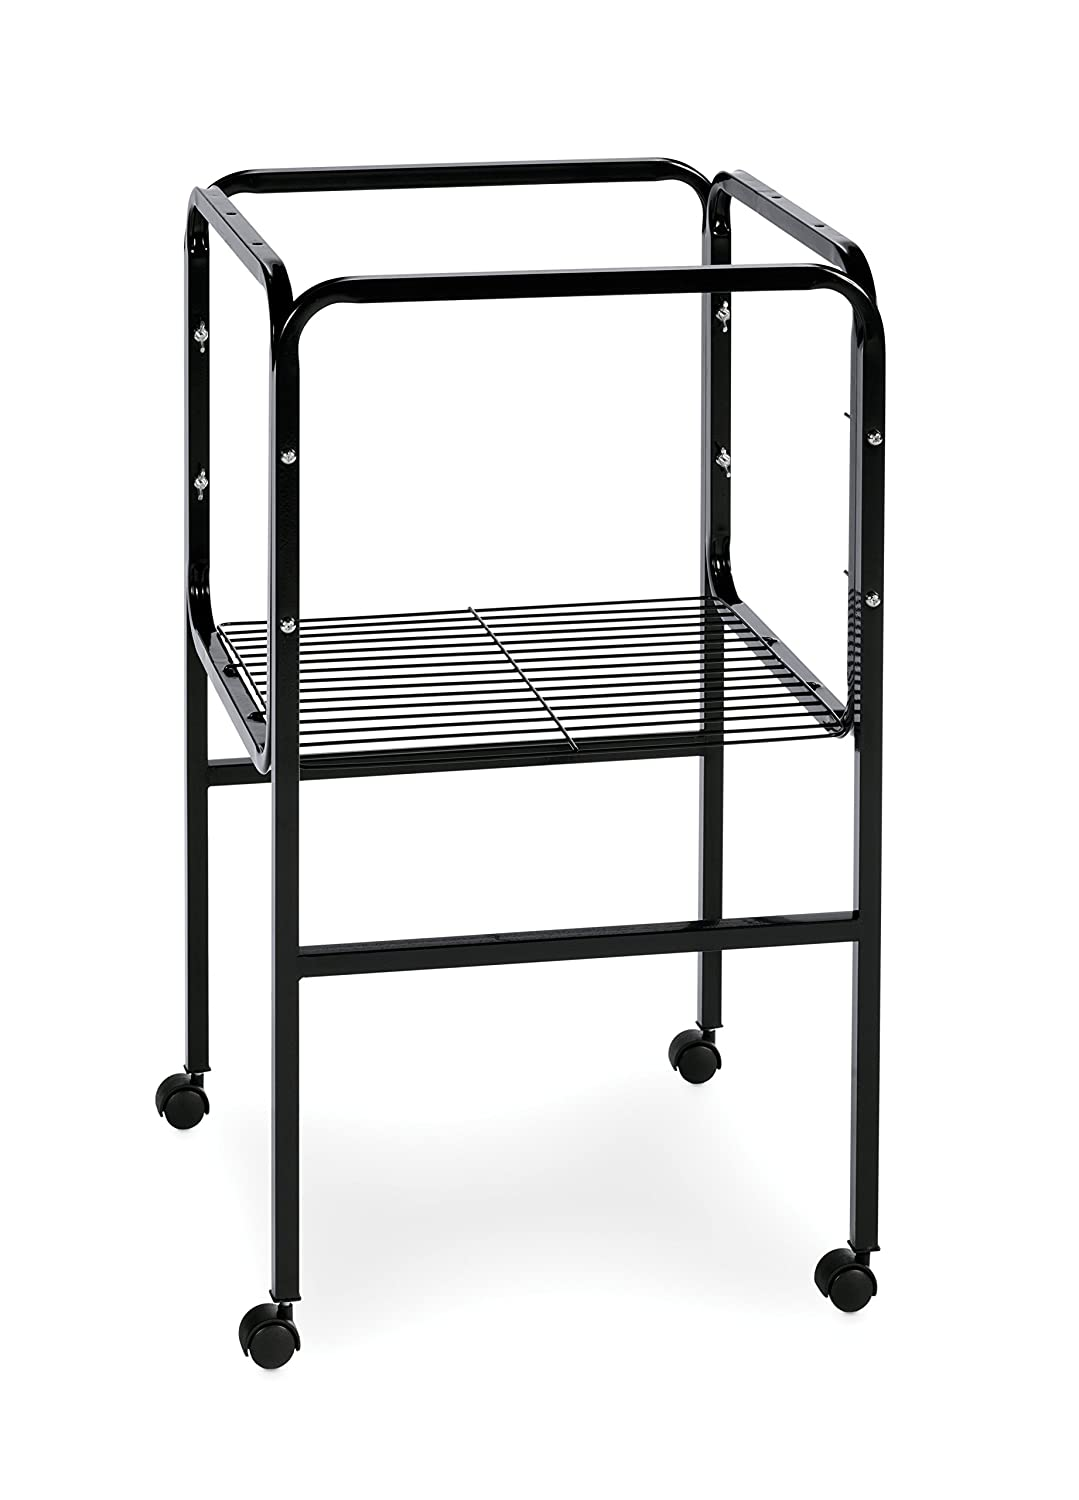 Prevue Pet Products Bird Cage Stand with Shelf, Black SP445BLK